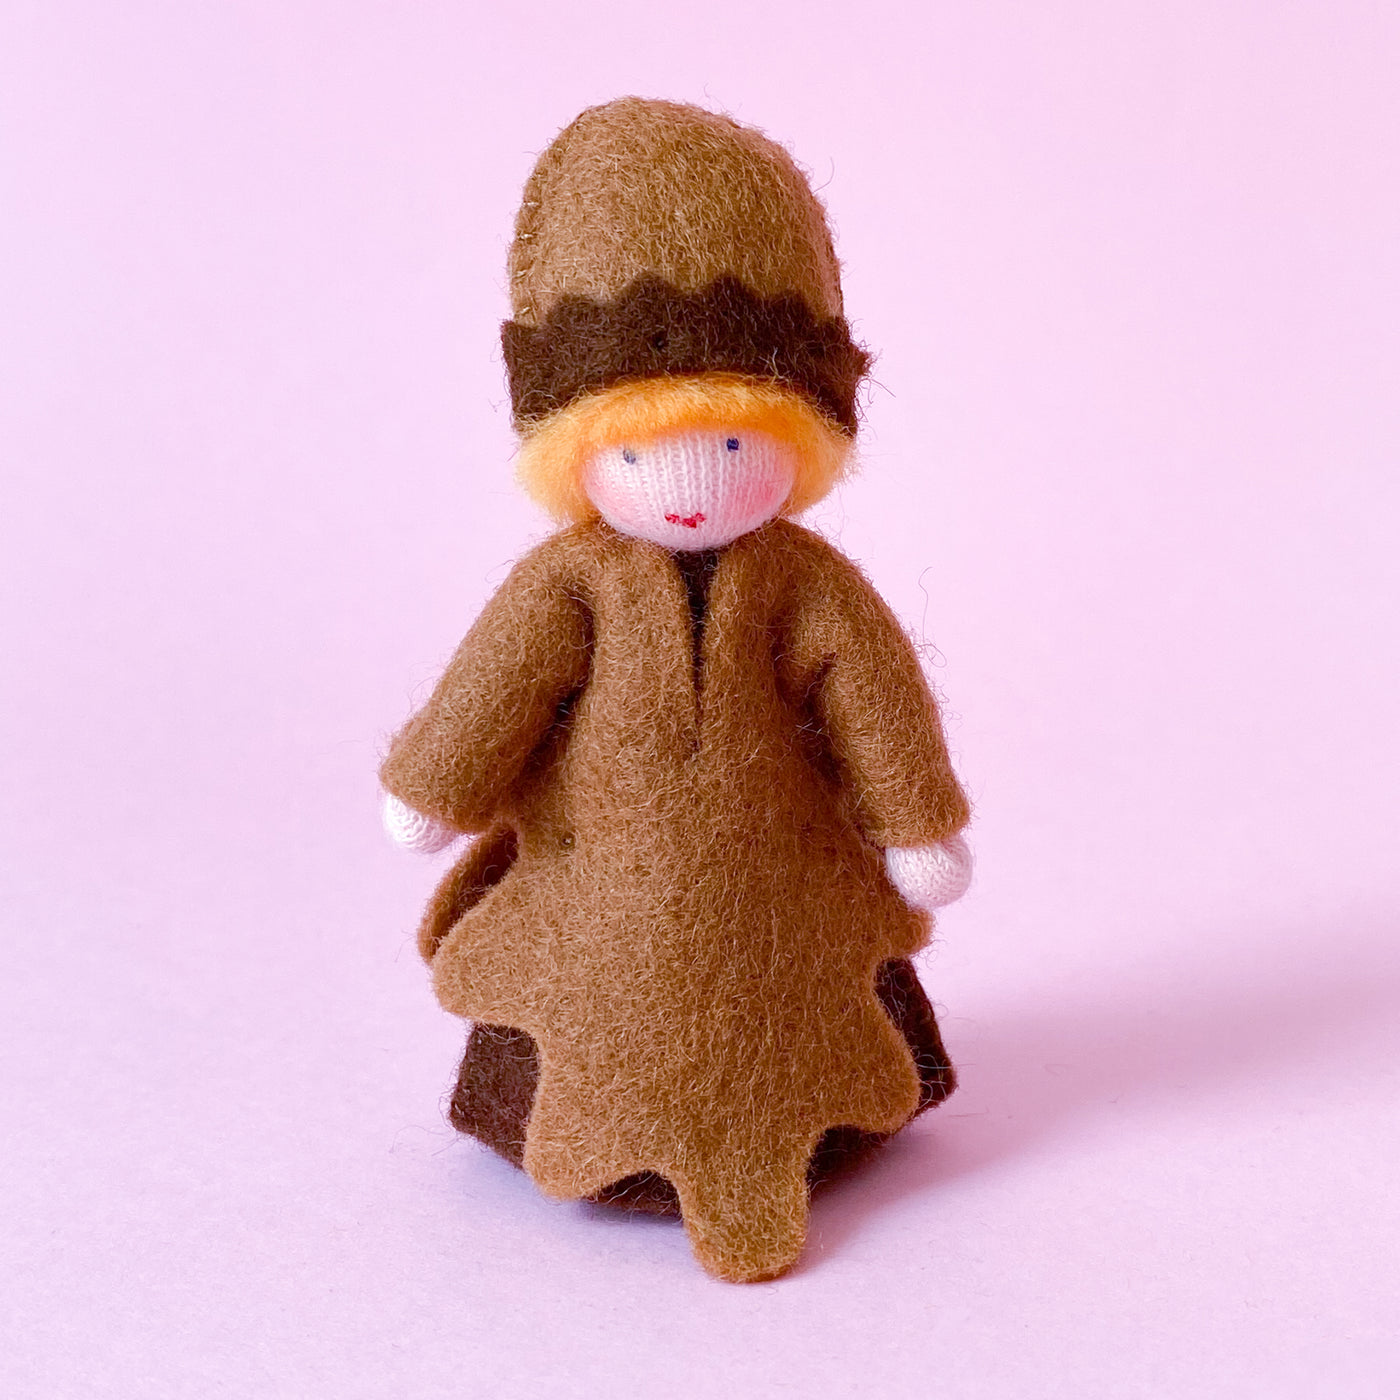 Acorn Prince Miniature Eco Friendly Doll made of felt with a Fruit Hat handmade by Ambrosius